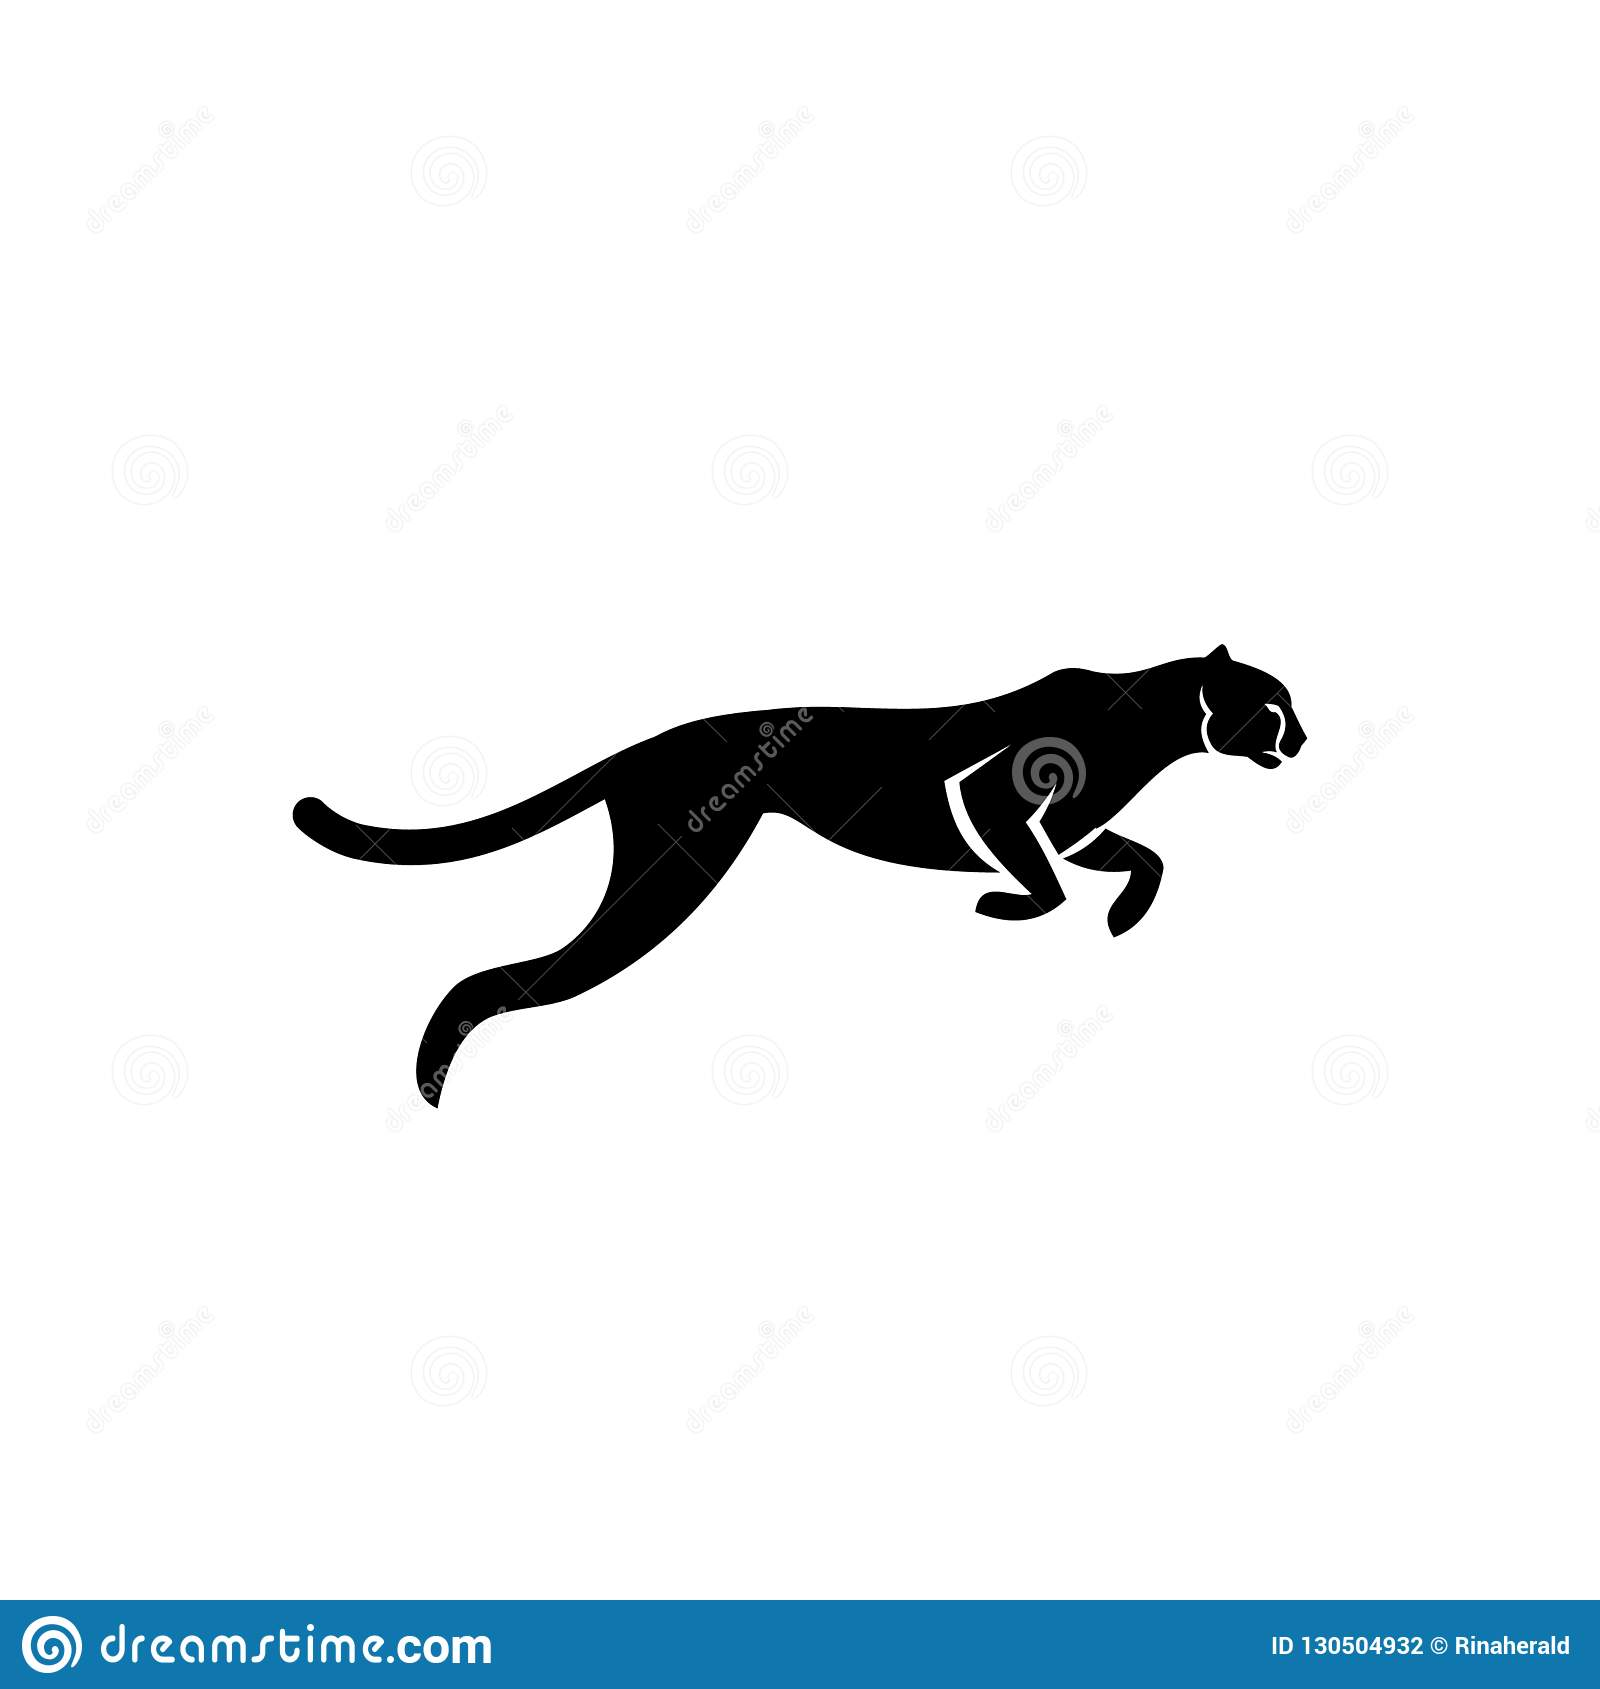 puma cheetah logo icon designs vector stock illustration illustration of flat ceetah 130504932 https www dreamstime com puma cheetah logo icon designs vector simple black flat puma cheetah logo icon designs vector image130504932